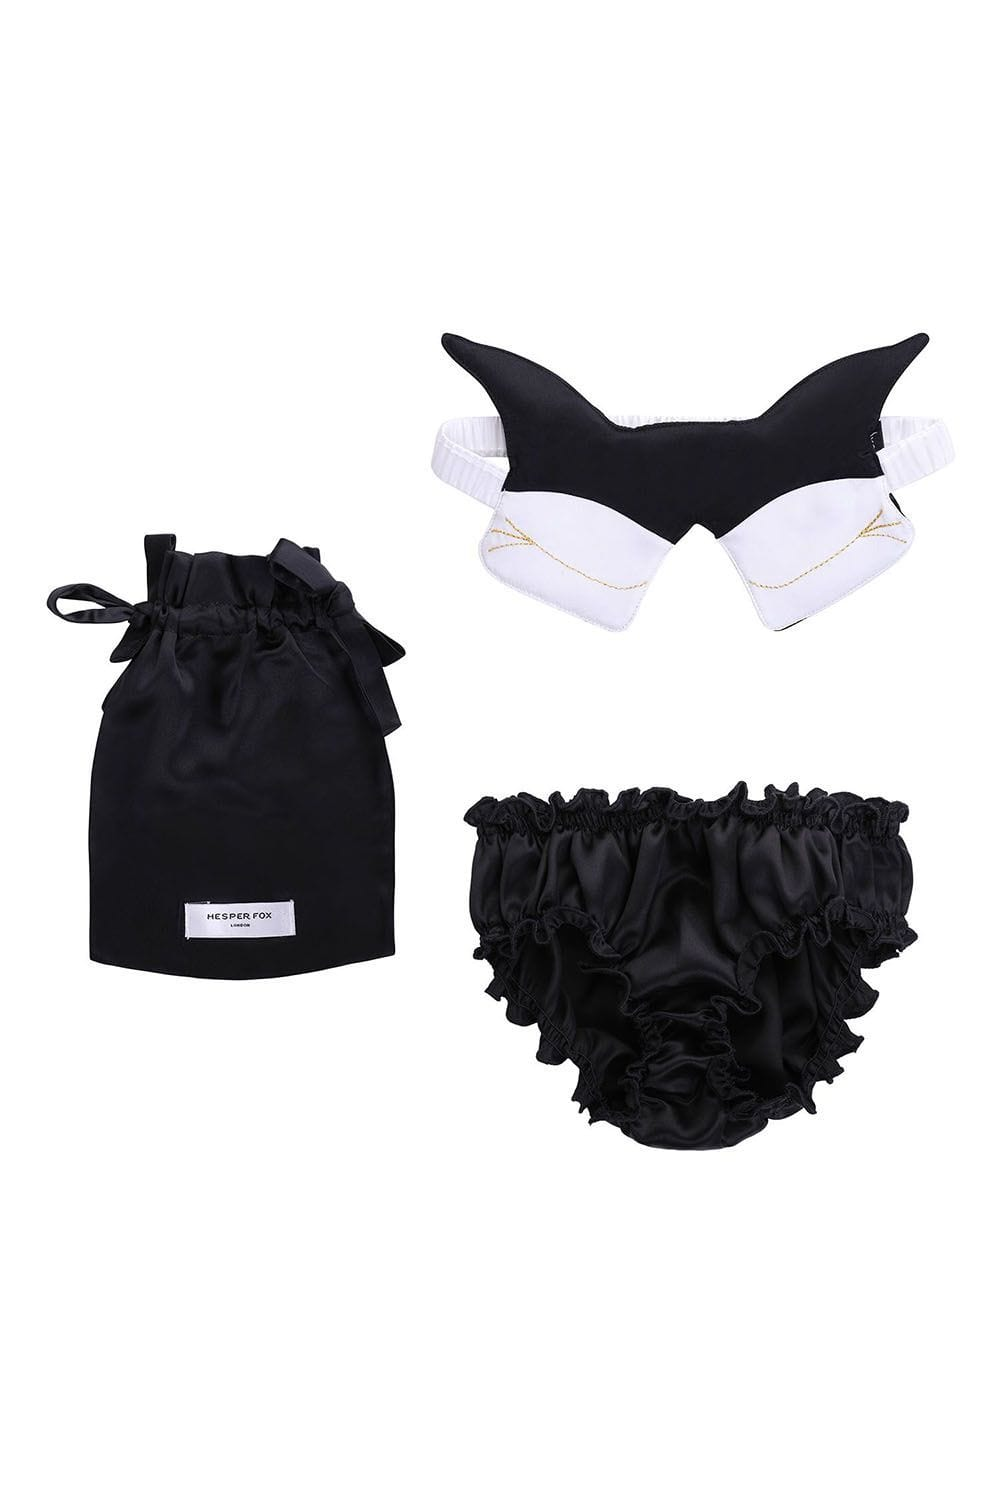 50880d5599 Lola Silk Knickers and Kitsune Silk Sleep Mask Gift Set - Monochrome ...